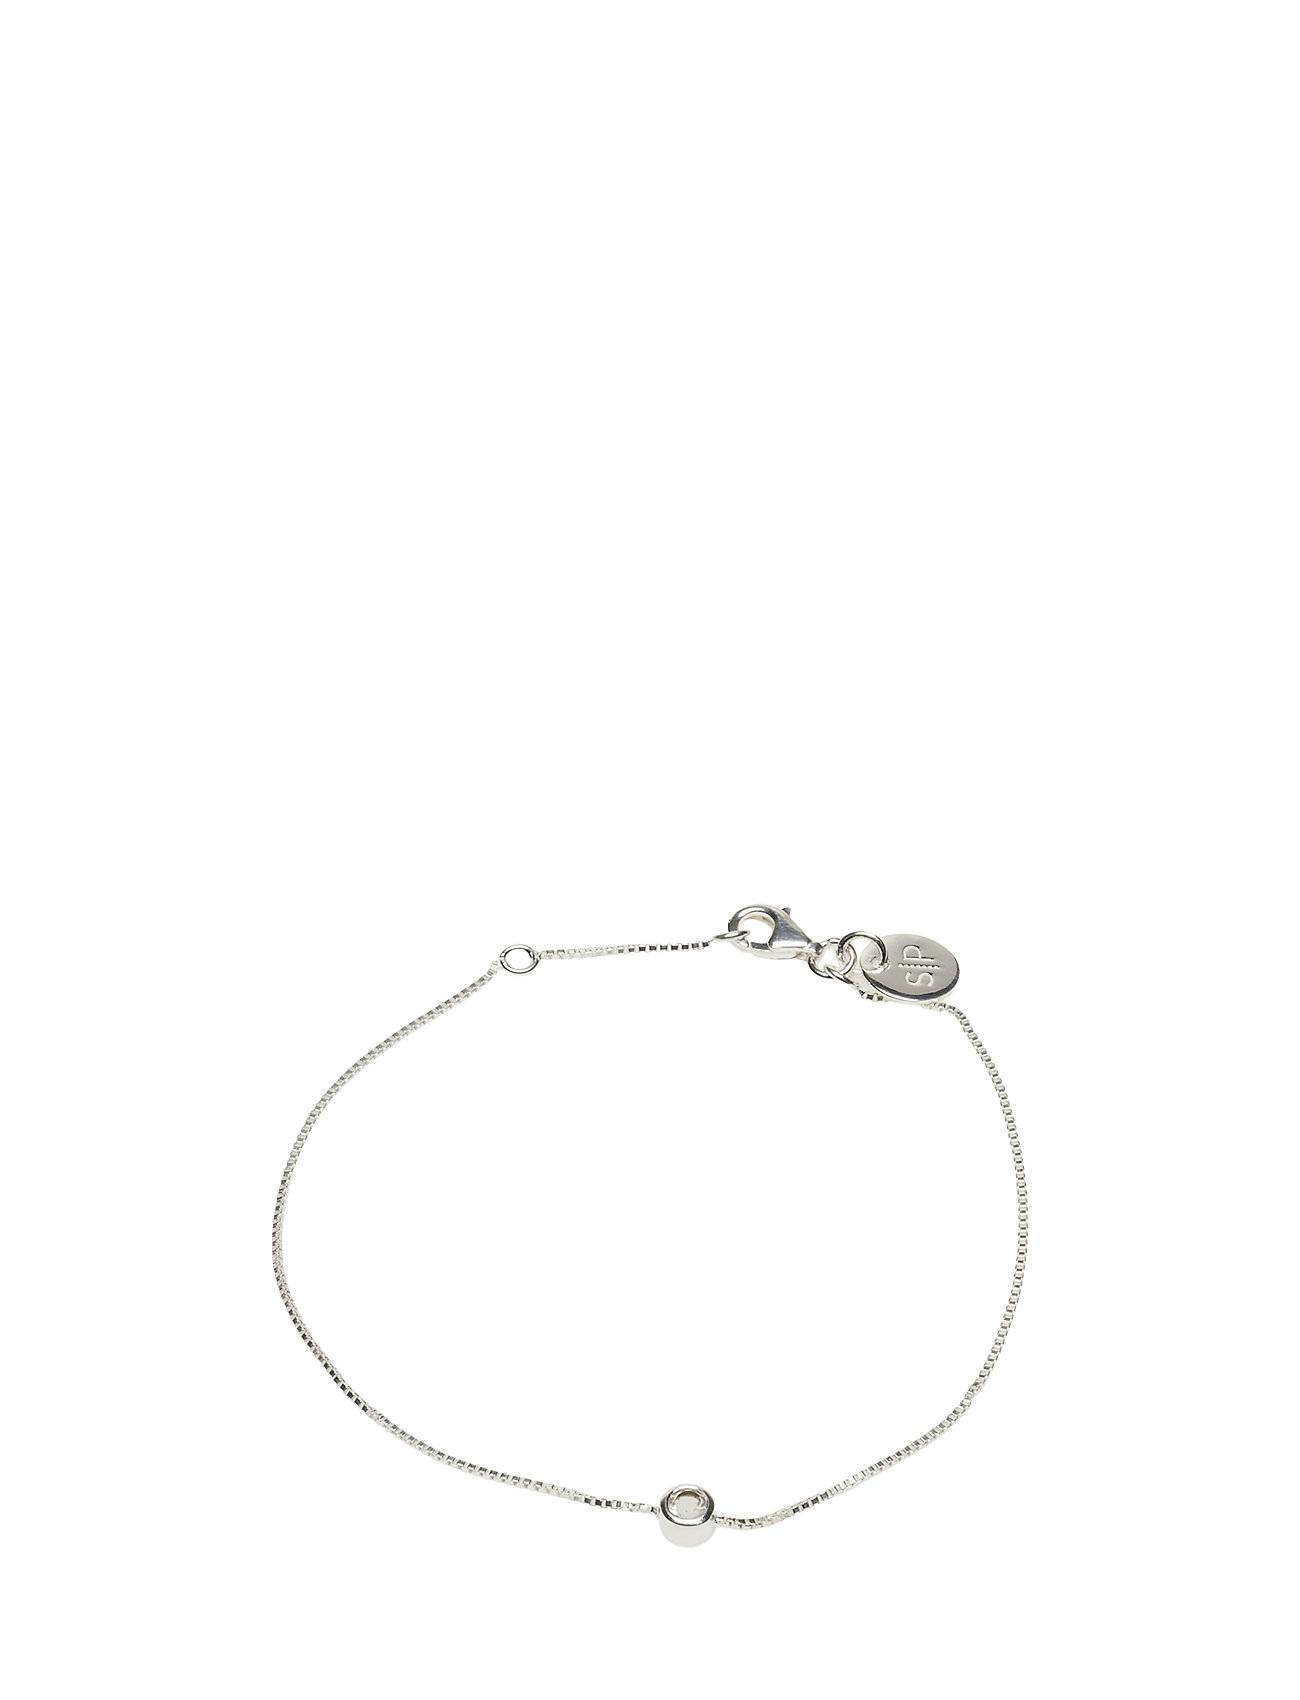 Syster P Minimalistica Solo Bracelet Silver Crystal Accessories Jewellery Bracelets Chain Bracelets Hopea Syster P